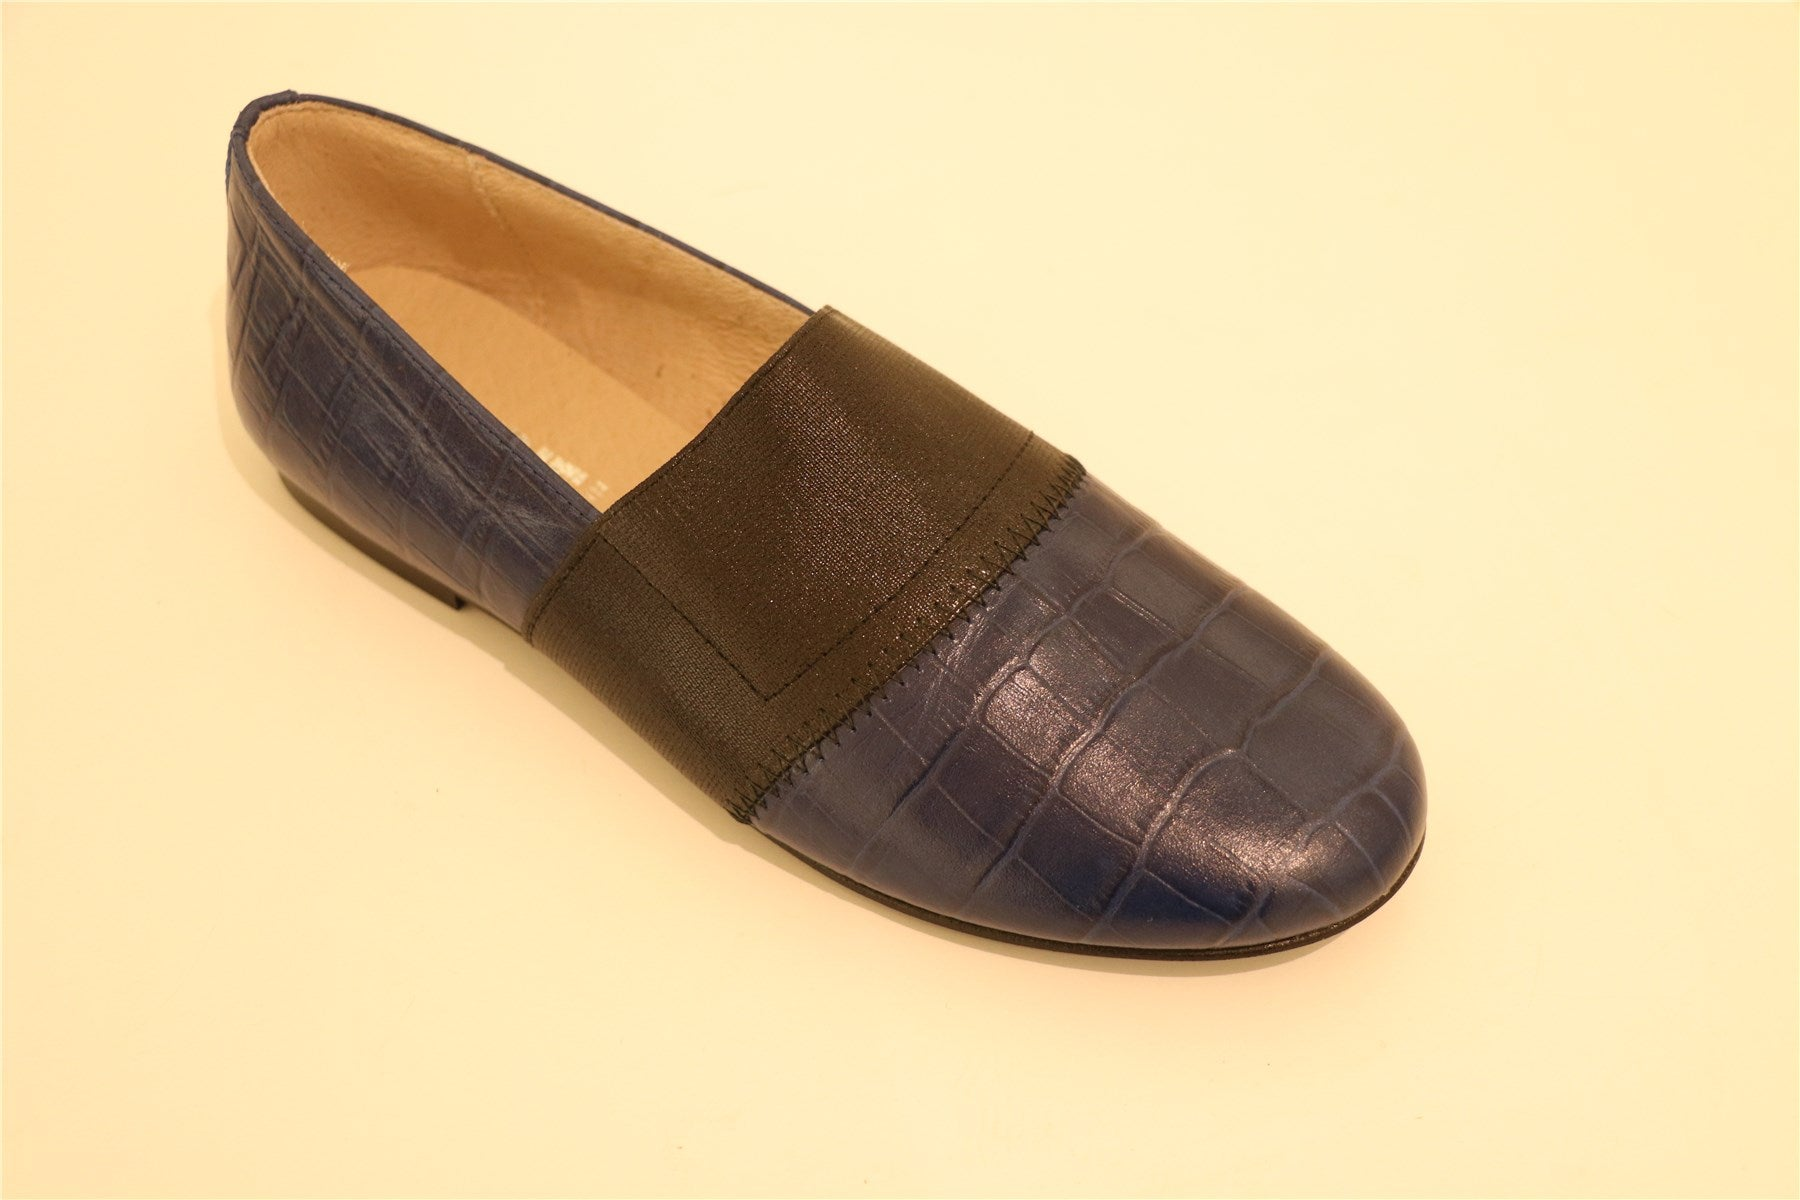 Navy Blue Crocodile-Leather With Black Strap Big Girl Loafer